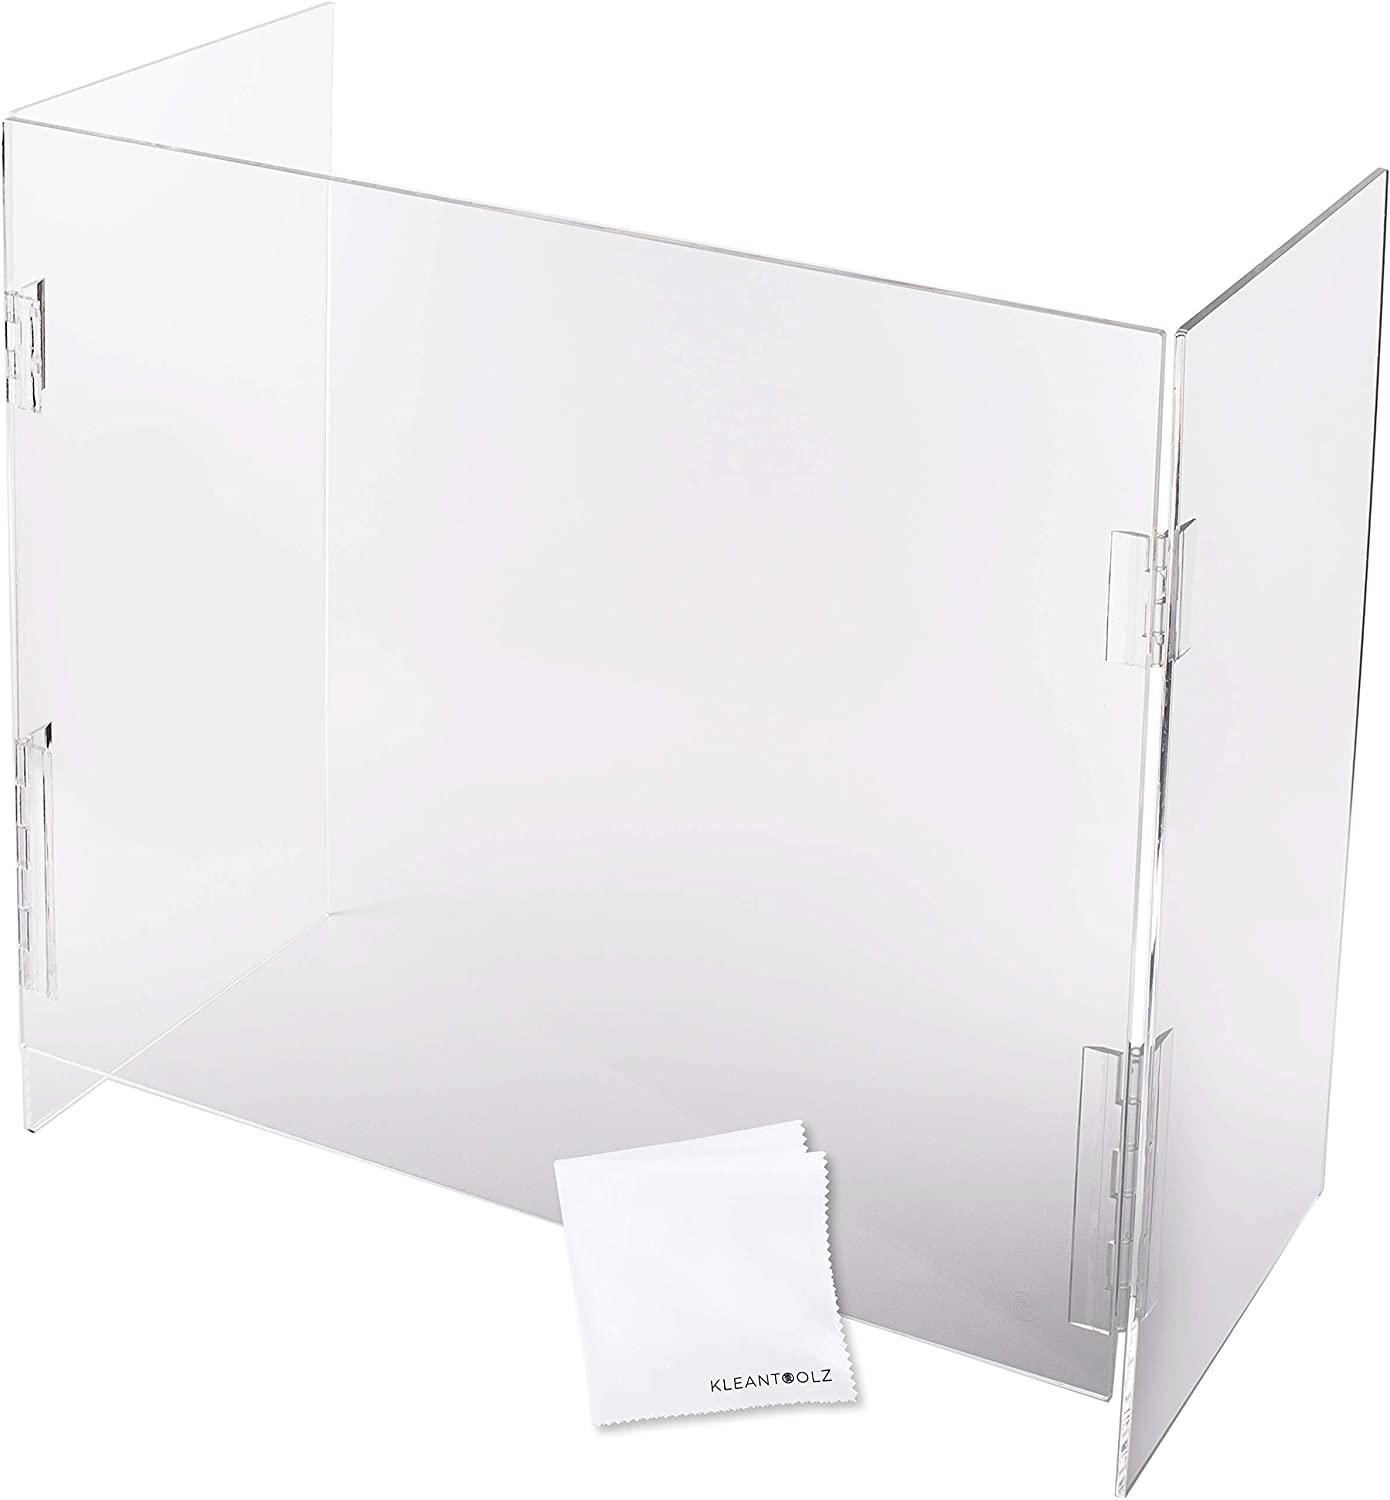 "U-Shield Clear Plexiglass Acrylic Protective Sneeze Guard Counter Shield Plexi Glass Screen Divider Barrier for Reception Office School Salon Partition Window (42""L x 24""W)"